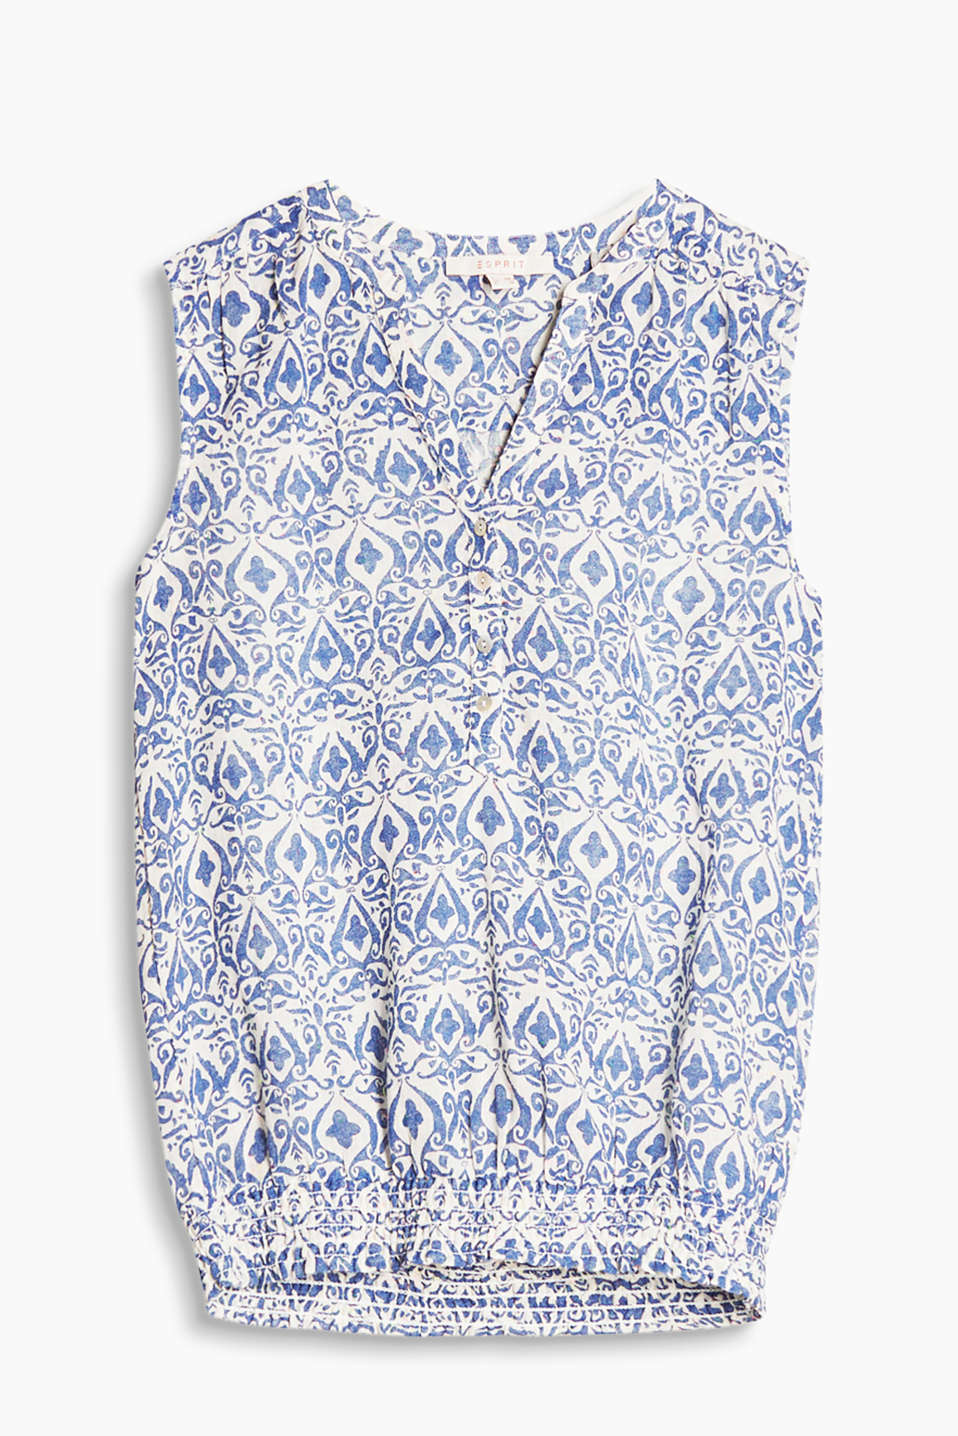 Luftiges Blusen-Top im Henley-Stil mit Ornament-Print, Baumwoll-Mix